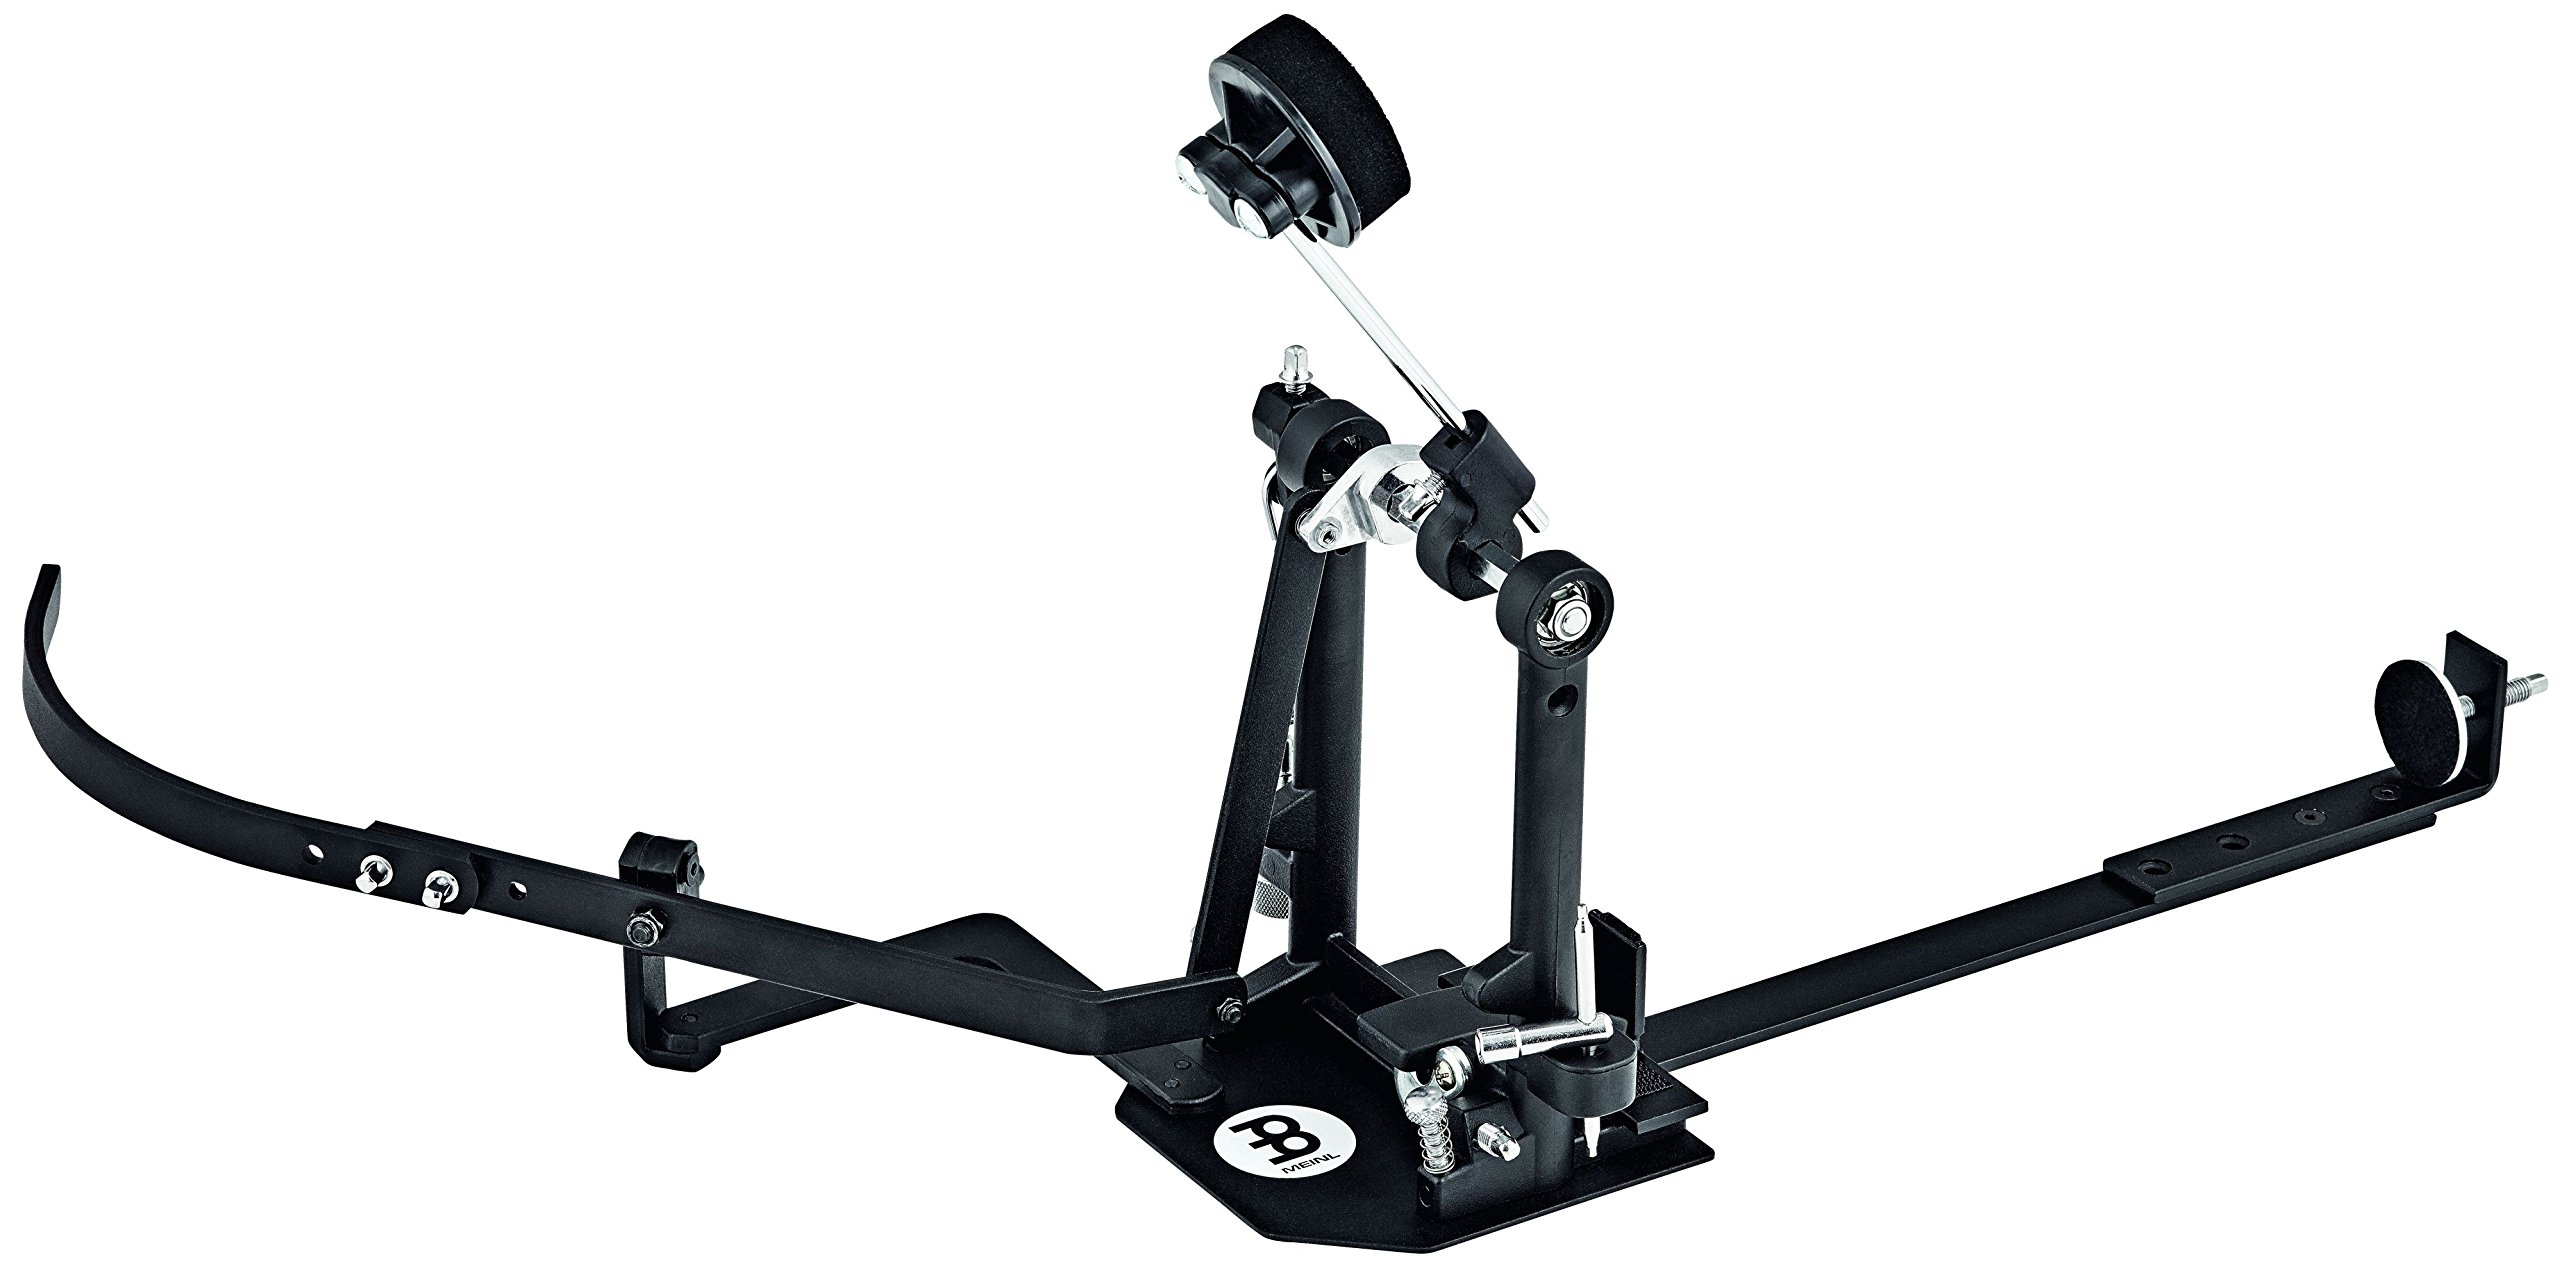 Meinl Percussion Direct Drive Cajon Pedal, 2-YEAR WARRANTY (TMSTCP)